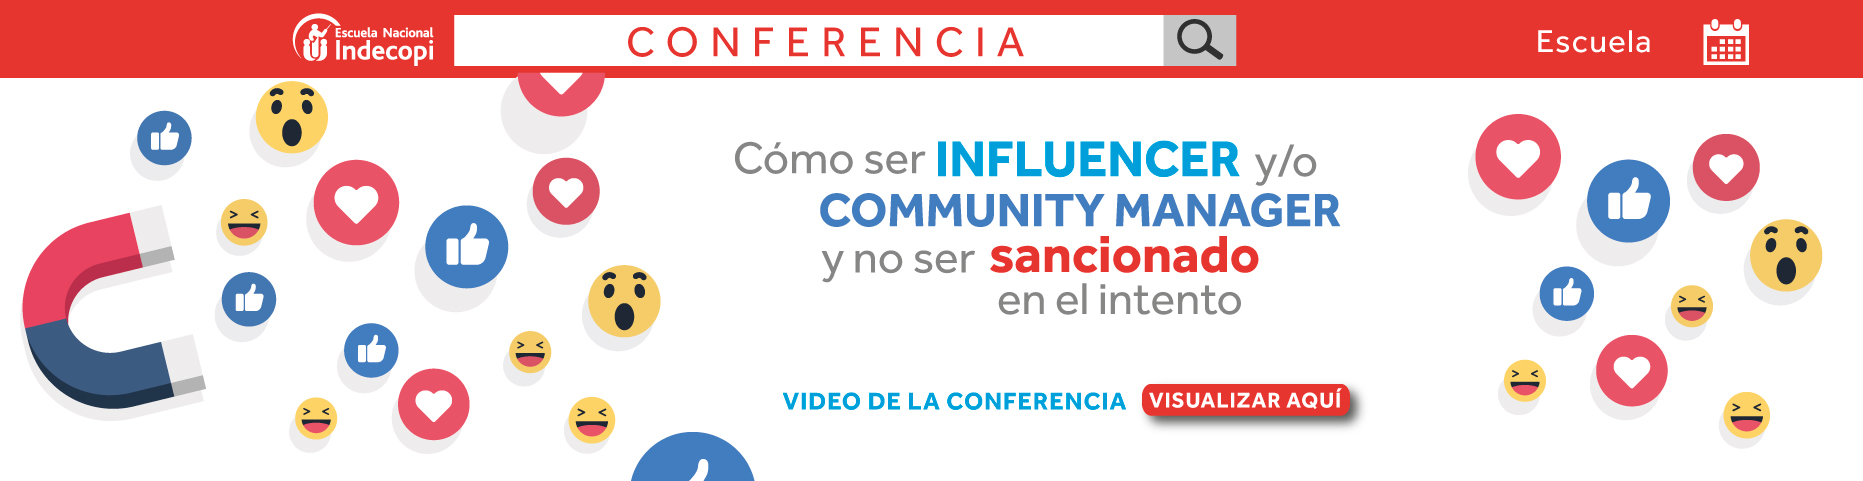 Conferencia Cómo ser influencer y/o community manager y no ser sancionado en el intento